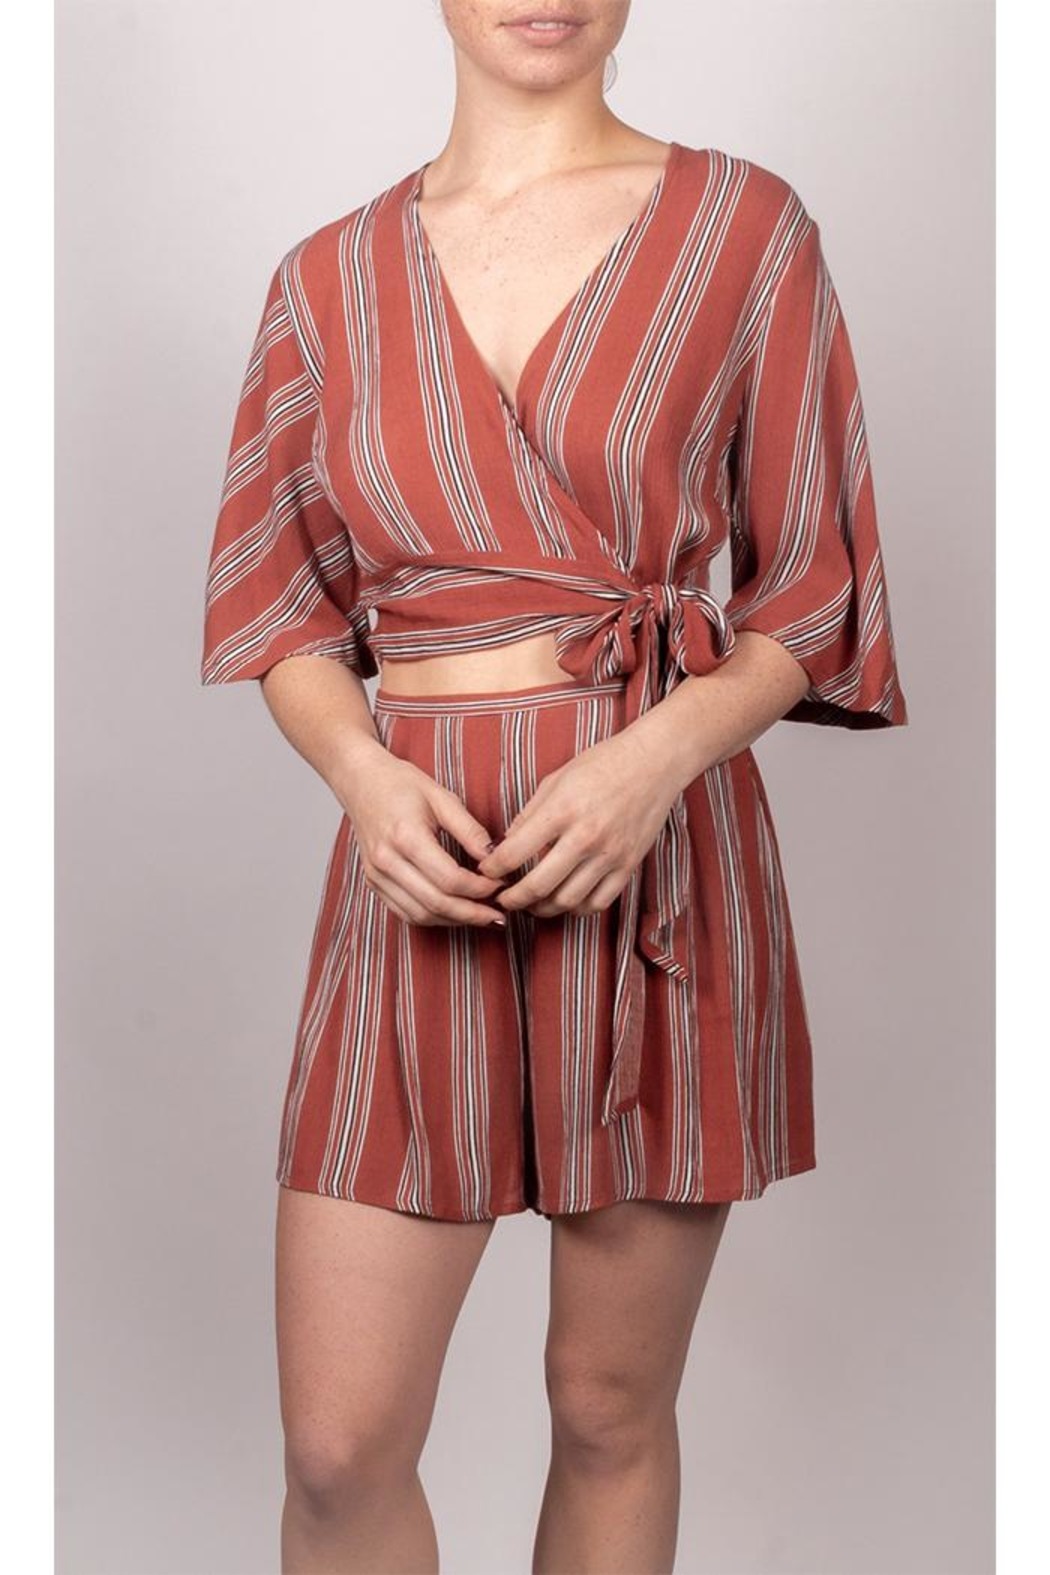 AAKAA It-Girl Striped Set - Front Cropped Image